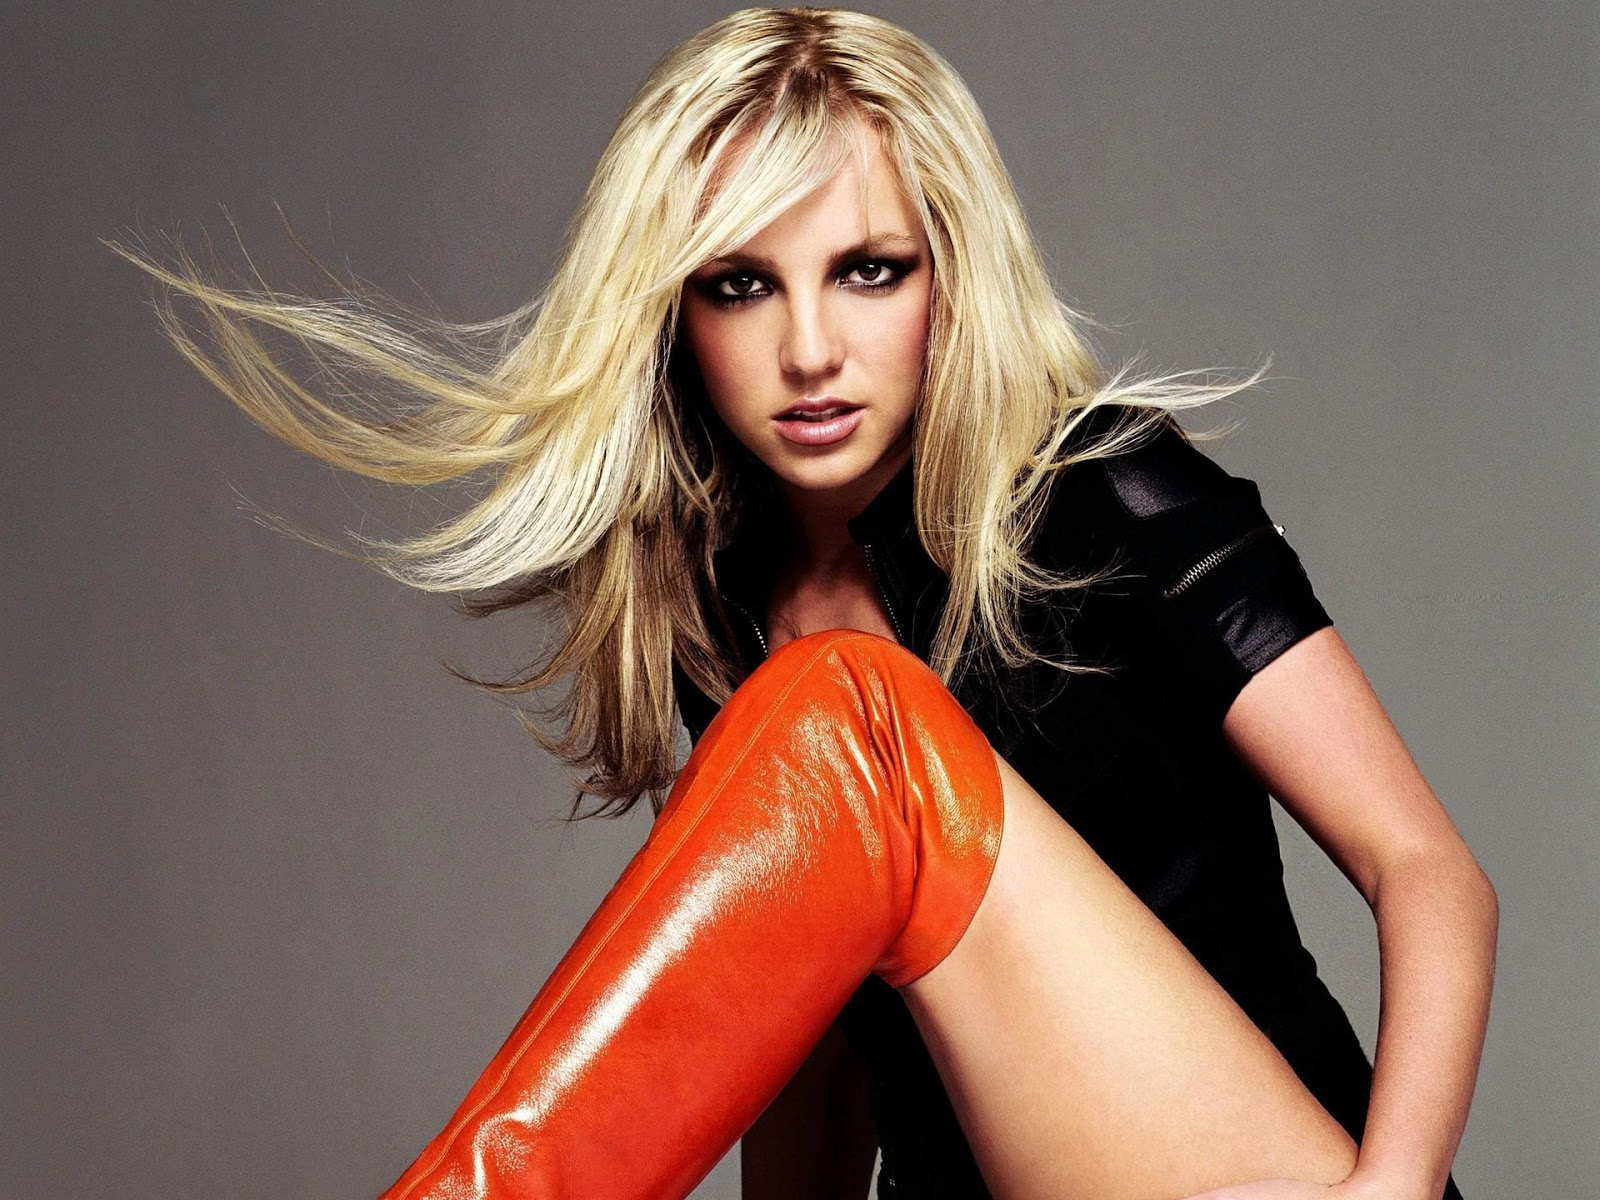 Teen Age images of Britney Spears Photoshoot Britney Spears Bold Pics in Bikini Bra Sexy Hot images in Seducing Poses Showing Boobs